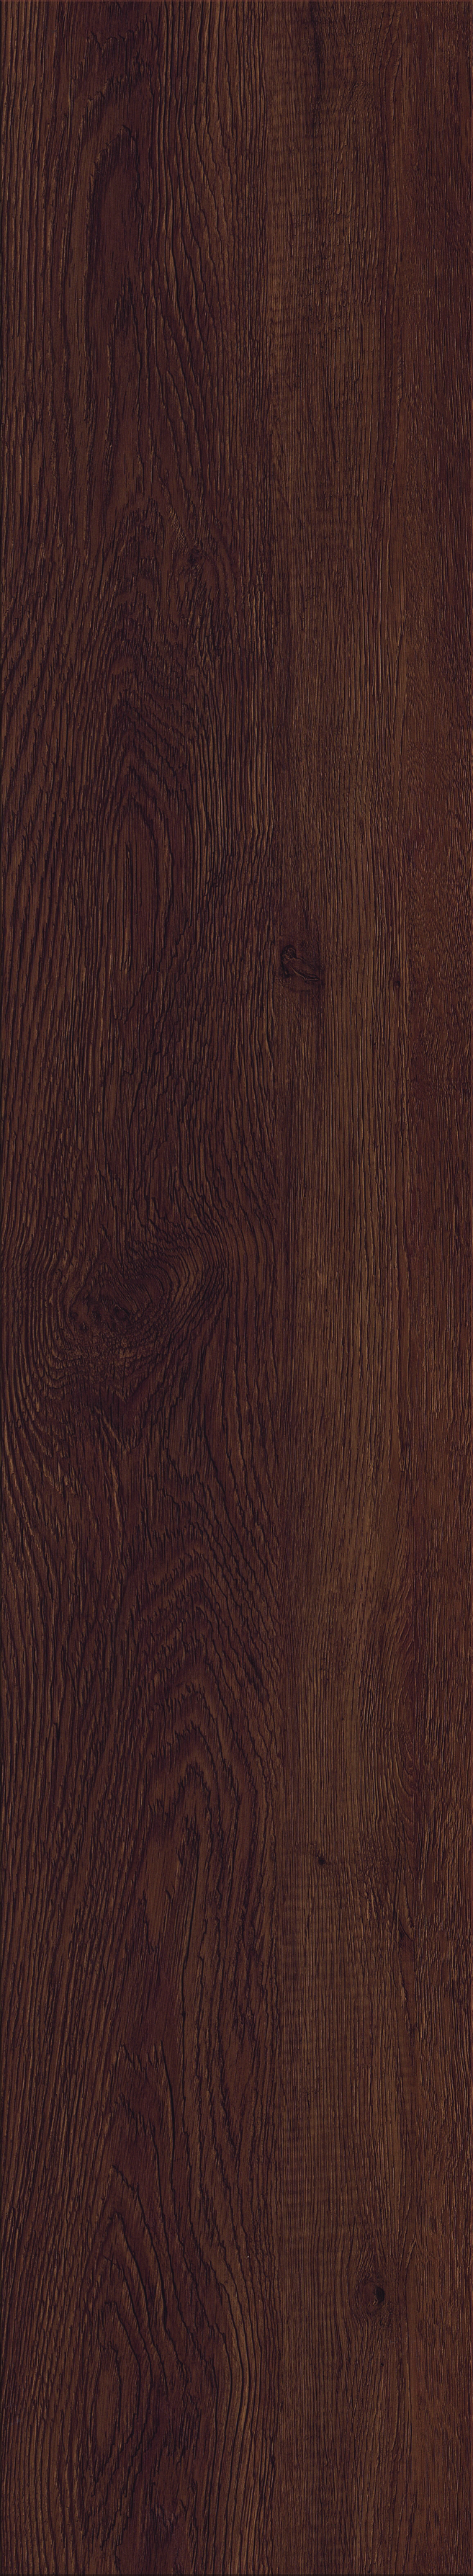 41588 Dark Brown Ash